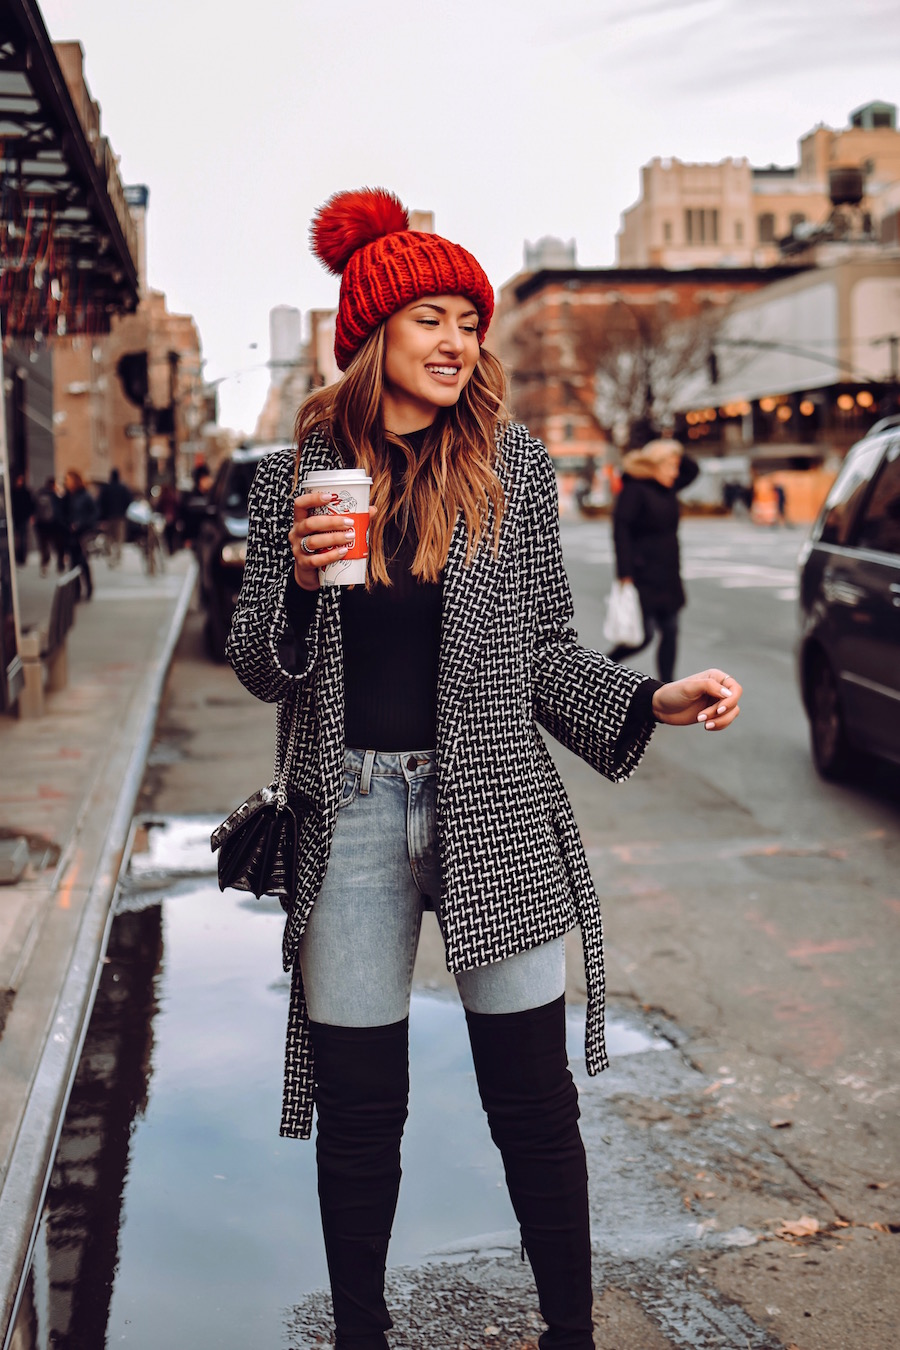 Winter-Outfit-Red-Fur-Pom-Beanie-and-OTK-Boots-07.jpg